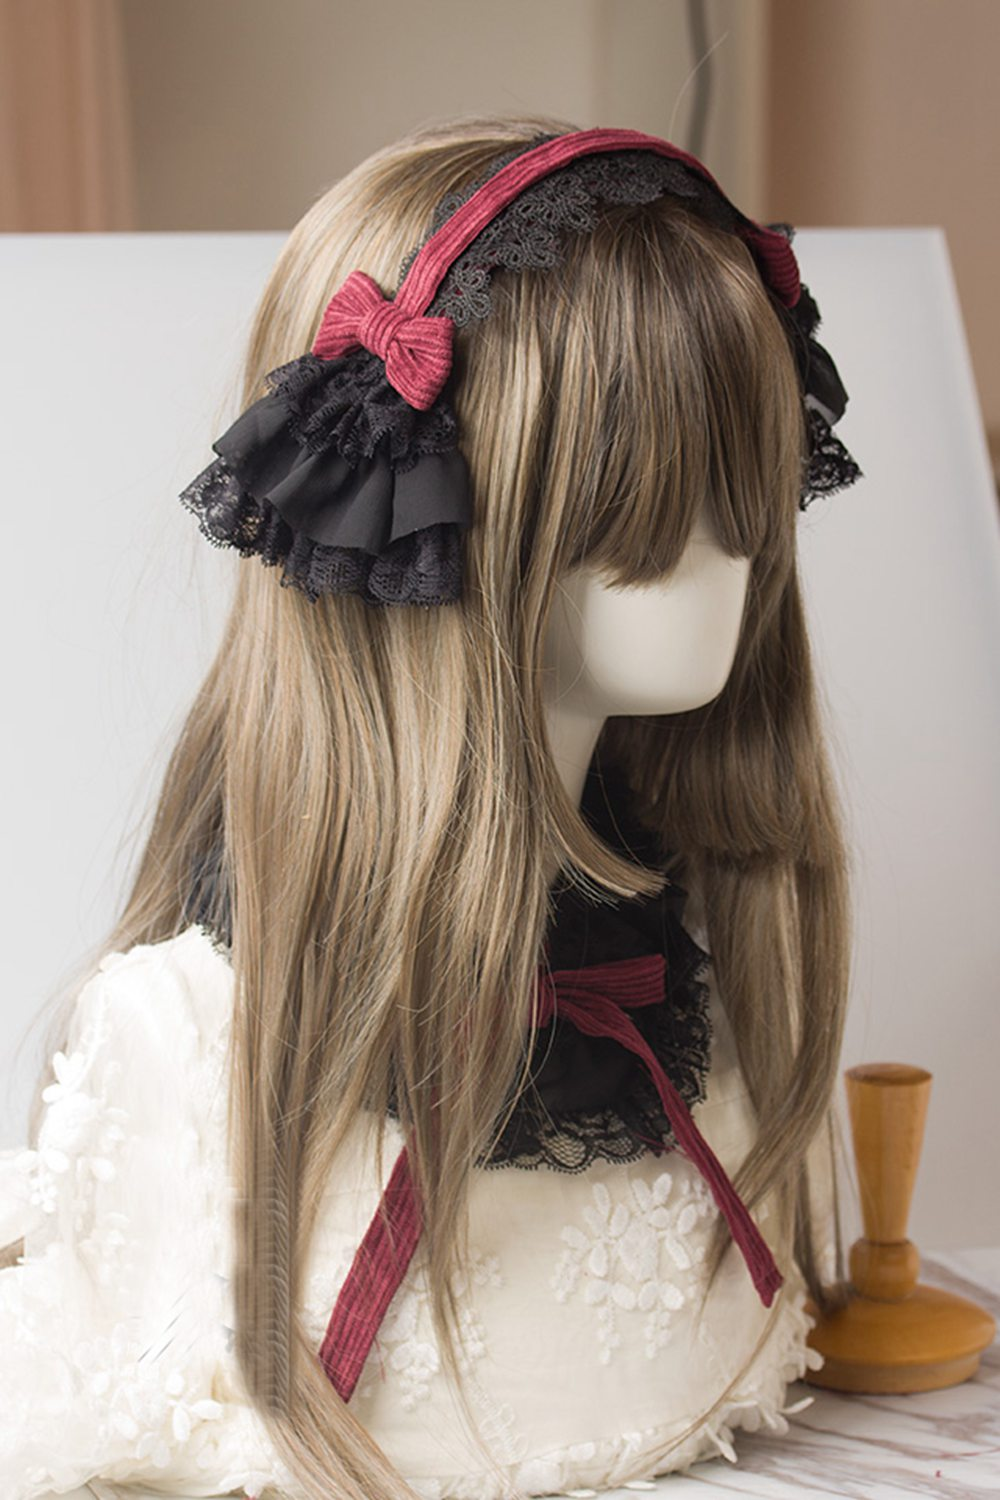 1pc Black Ruffled Lace Bow Hairband Gothic Lolita Collar